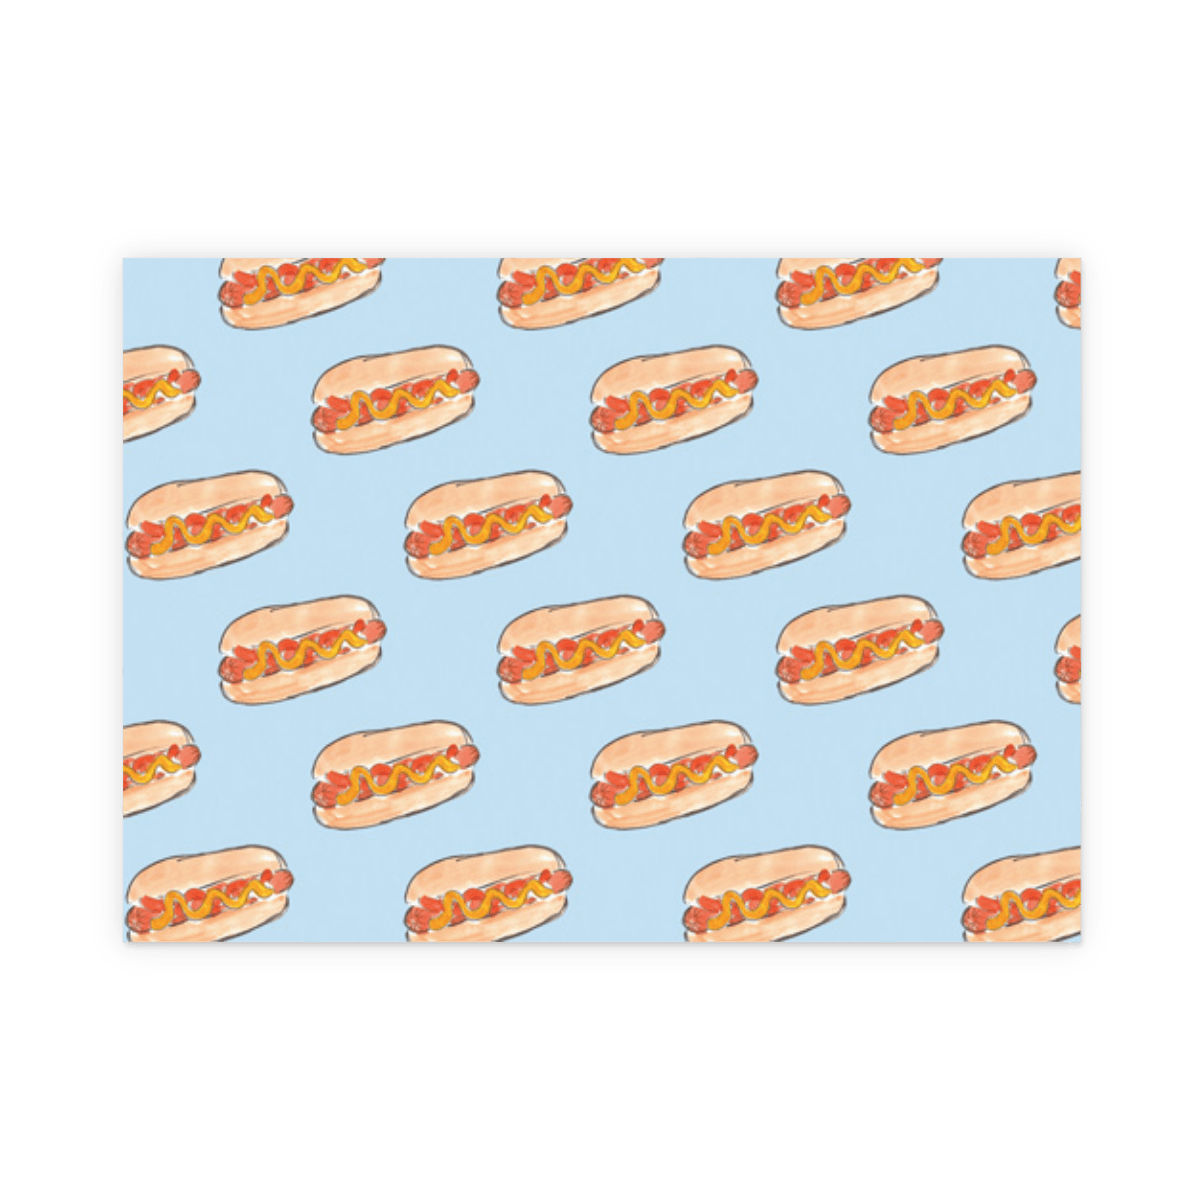 Https%3a%2f%2fwww.papier.com%2fproduct image%2f47336%2f42%2fhotdogs 11610 arriere 1537960432.png?ixlib=rb 1.1